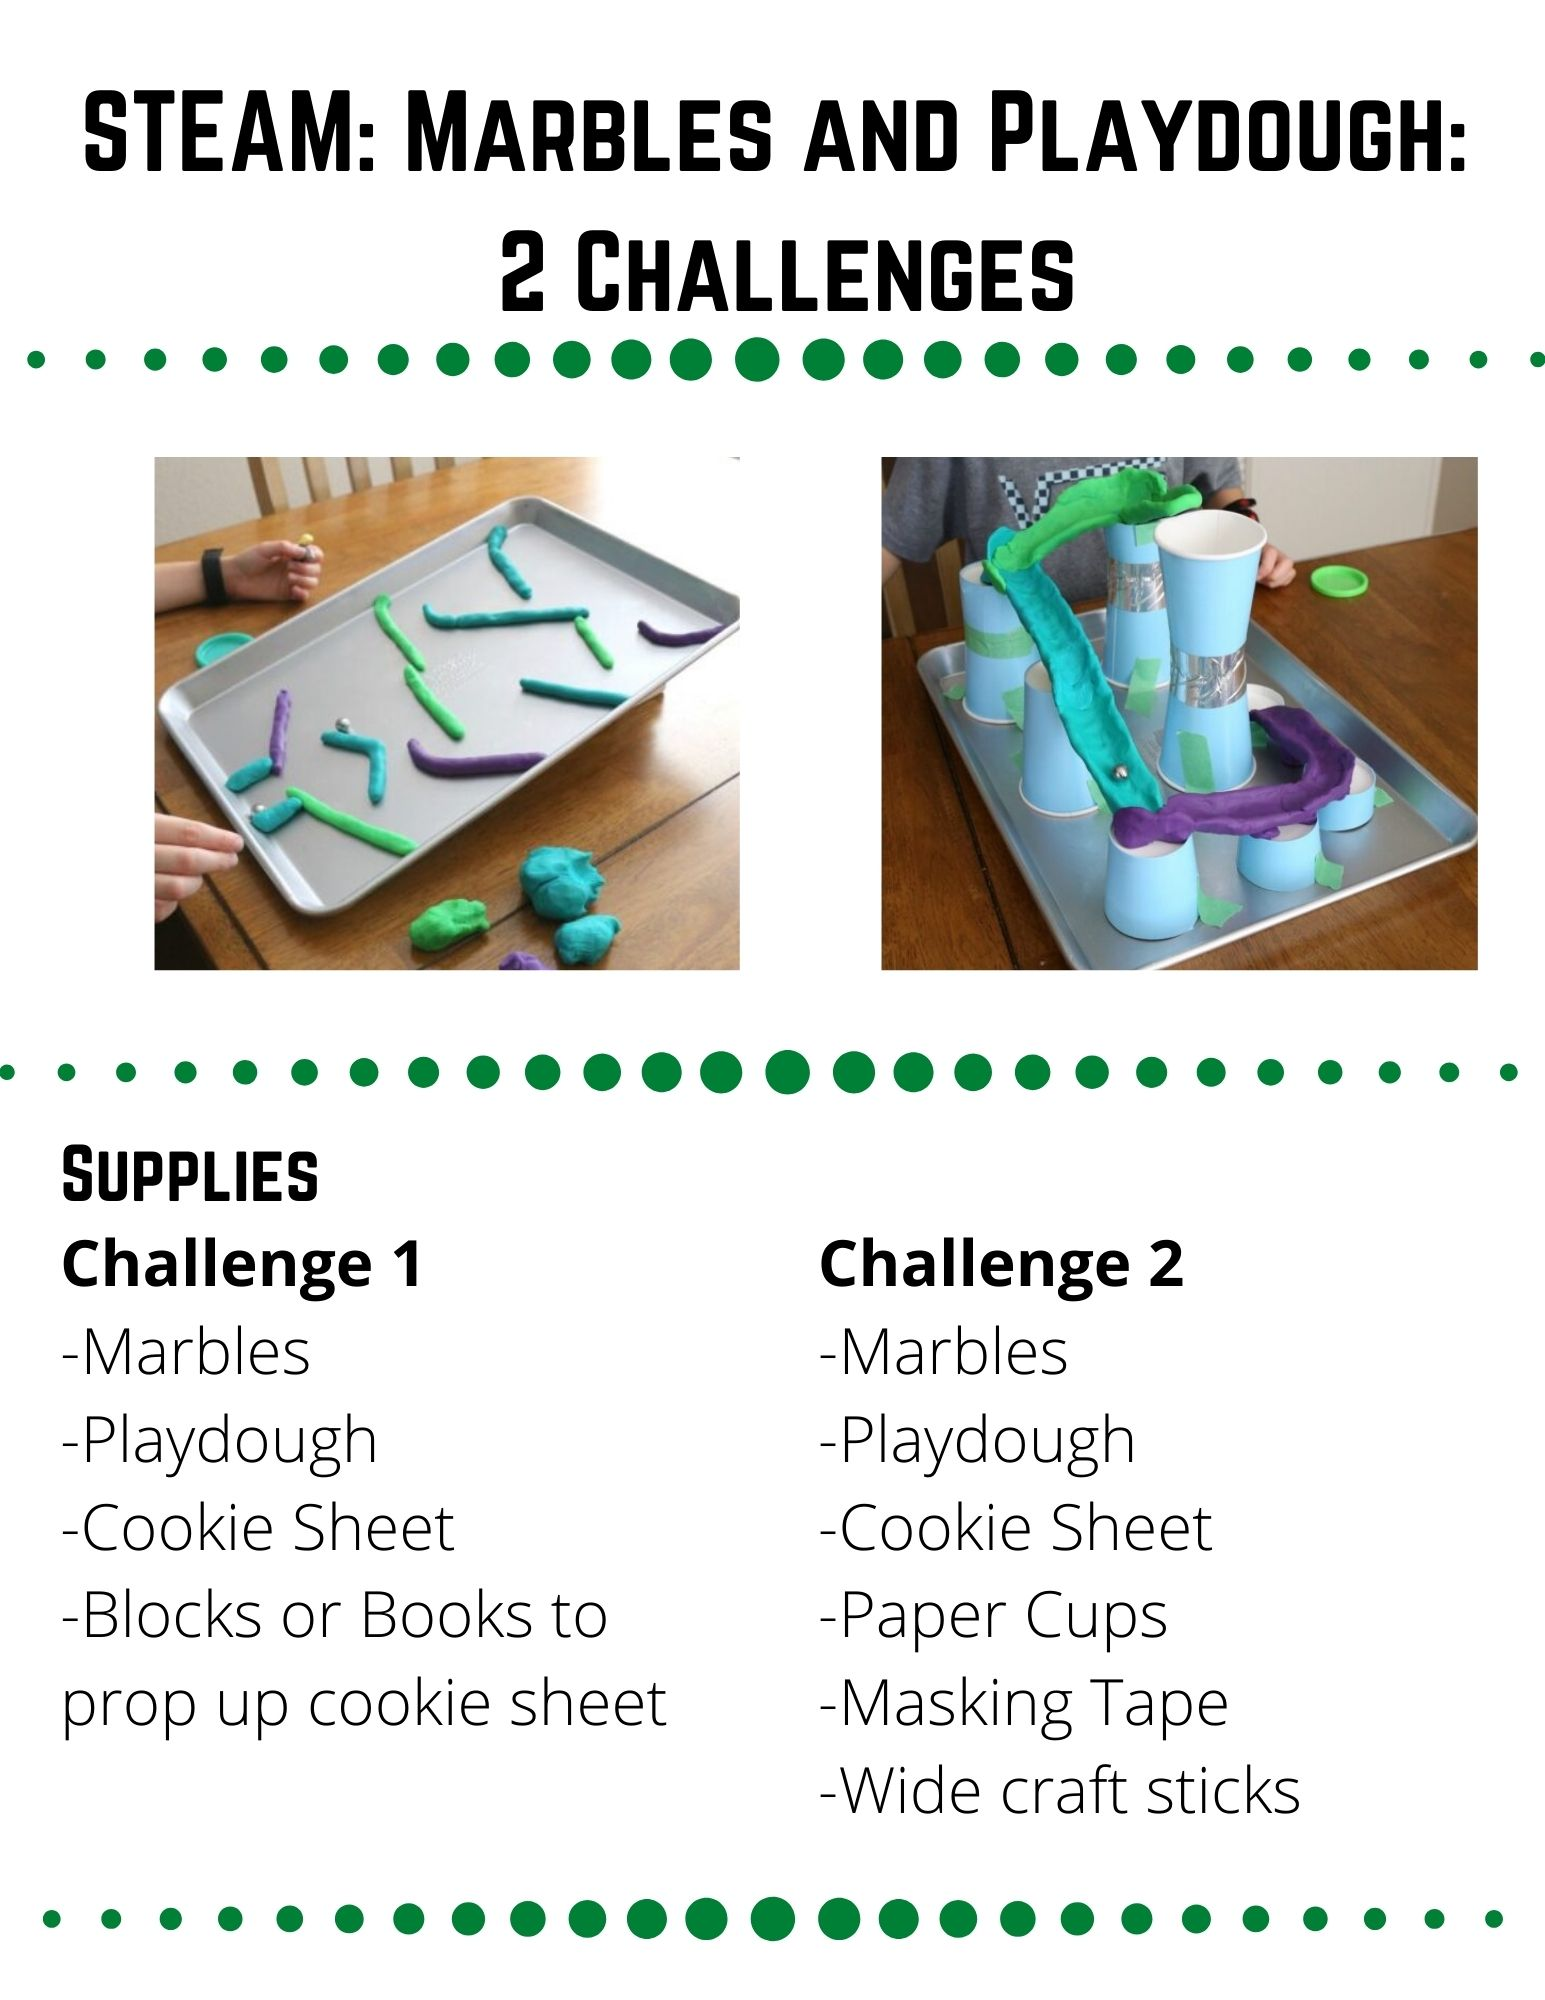 """STEAM: Marbles and Playdough. Supplies: -Marbles -Playdough -Cookie Sheet -Blocks or Books to prop up cookie sheet. Create a marble run out of playdough and a propped up cookie sheet. Prop up your cookie sheet with books or blocks, so one side is higher than the other.  Roll your playdough into many different sized """"snakes.""""  Plan a rout that will create a path for your marble to roll down. When you are ready, build your marble run.  Make sure there are no spots where your marble could get stuck on the way down. Did your marble run work like you thought it would?  Is there anything you need to change to make your marble run work better?  Is there anything you want to change for fun? Build another marble run, putting your playdough in different positions.  Which one worked better, the first or second run?  Can you build a third?  Are there other materials you could put in your marble run?  How can you attach these materials to the cookie sheet?  Do these materials make your run faster or slower?  Which version of your marble run worked the best?"""